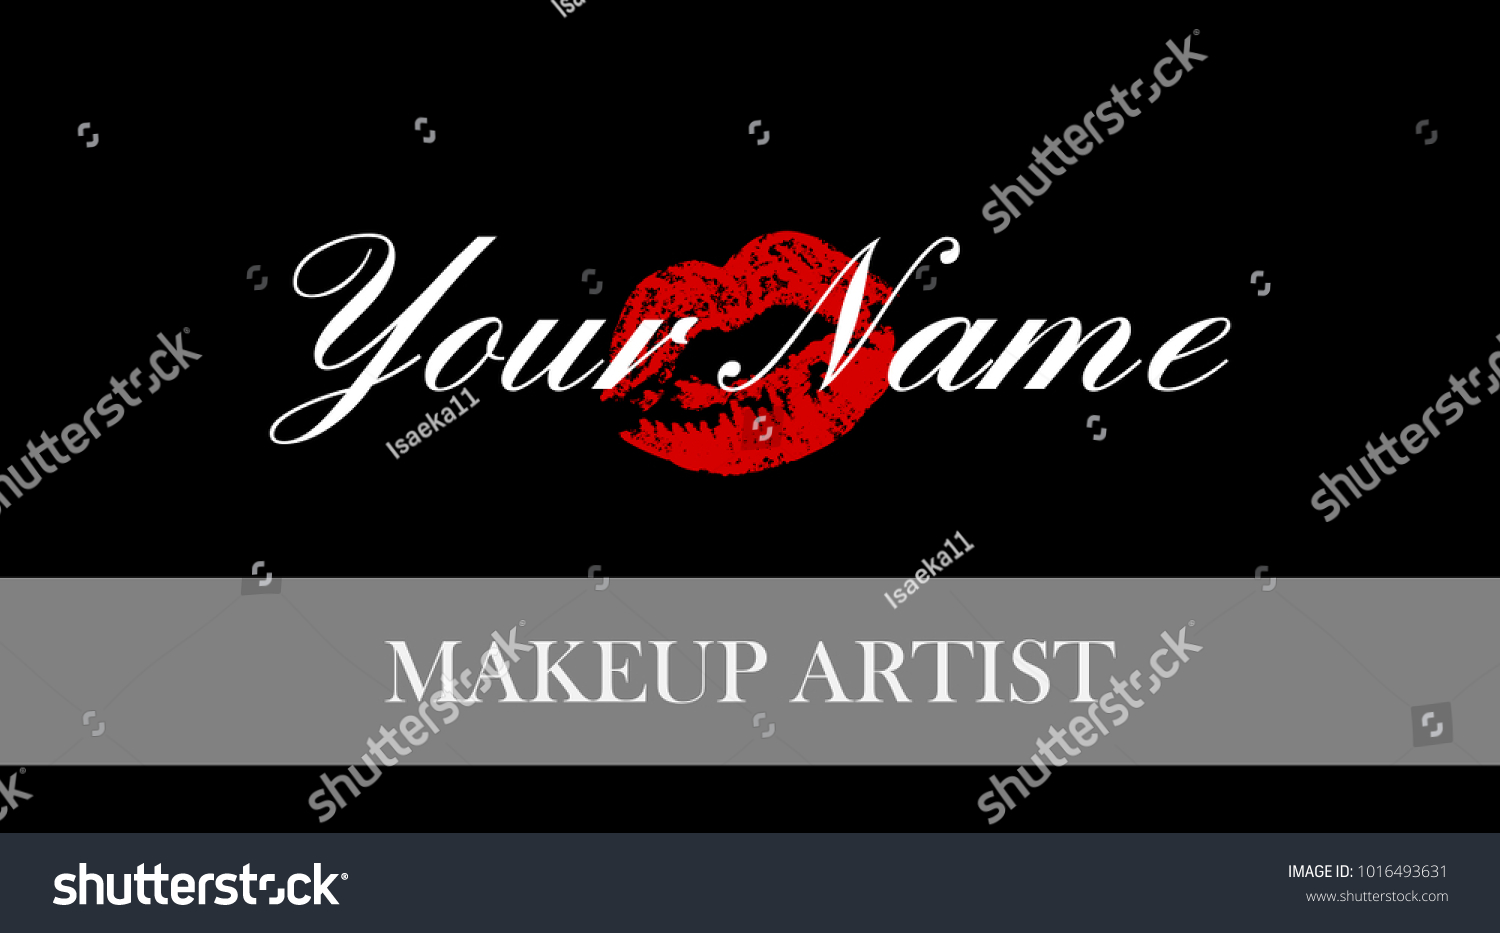 Makeup Artist Business Card Business Cards Stock Photo (Photo ...